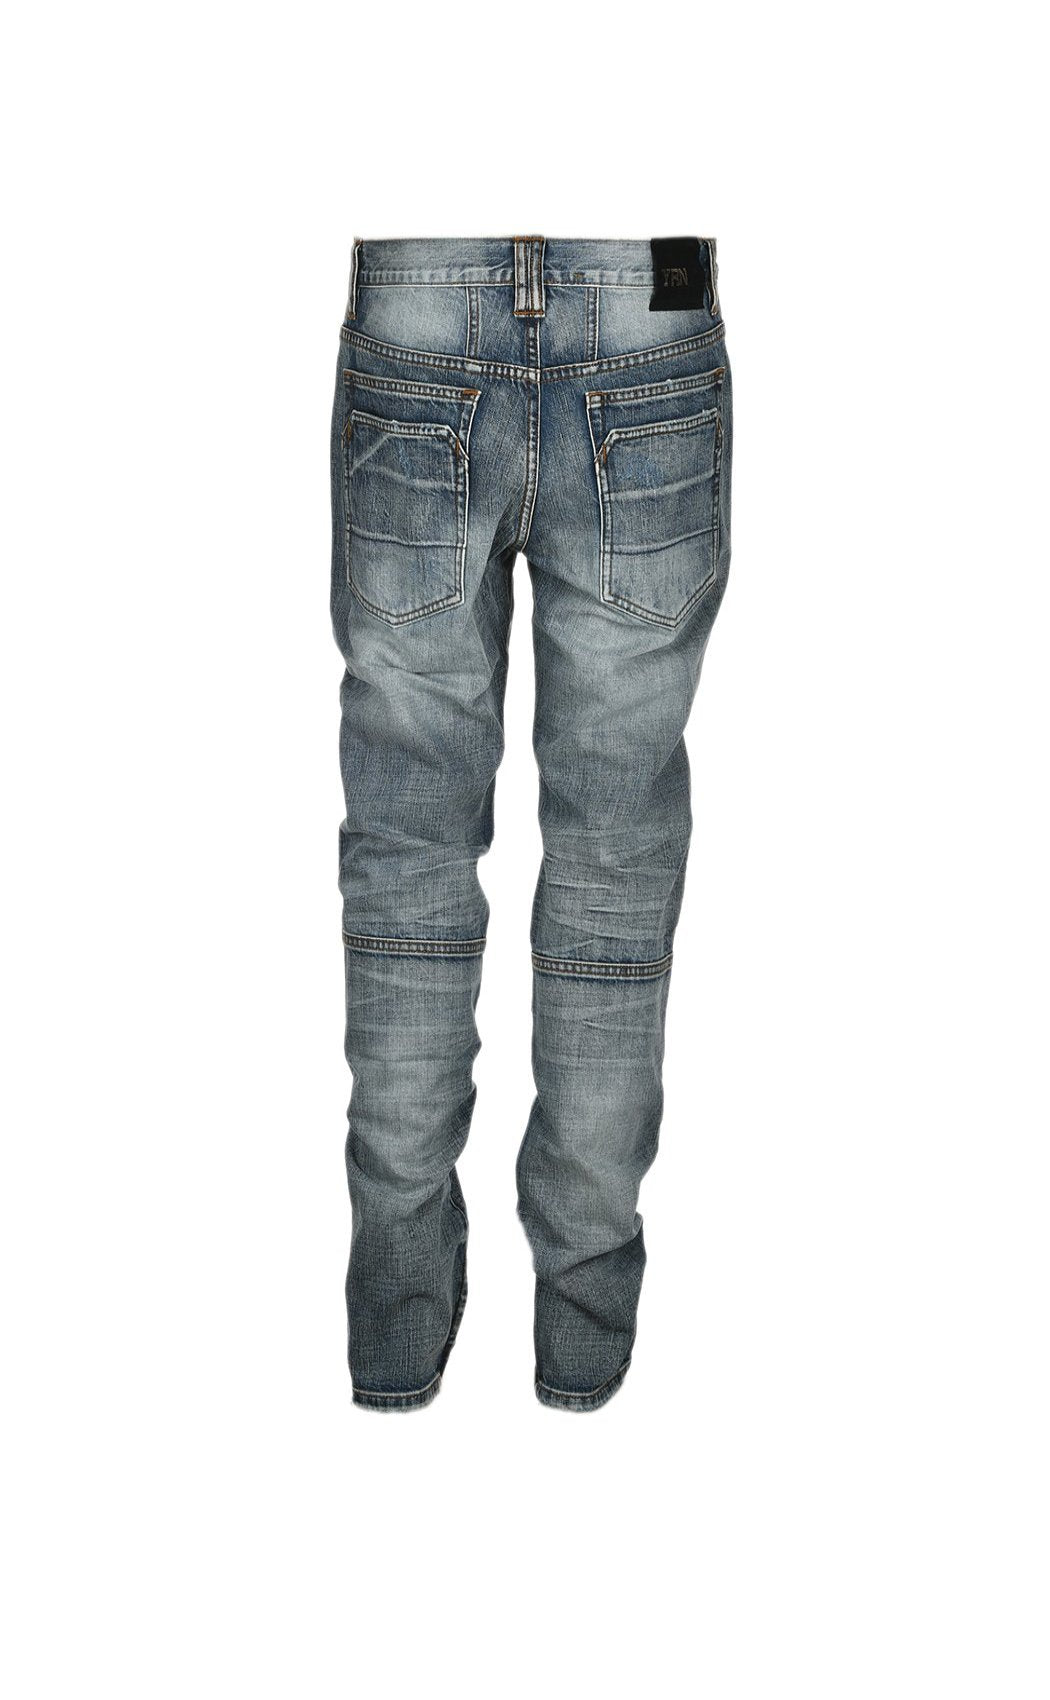 ANARCHY V.1 DENIM - INDIGO